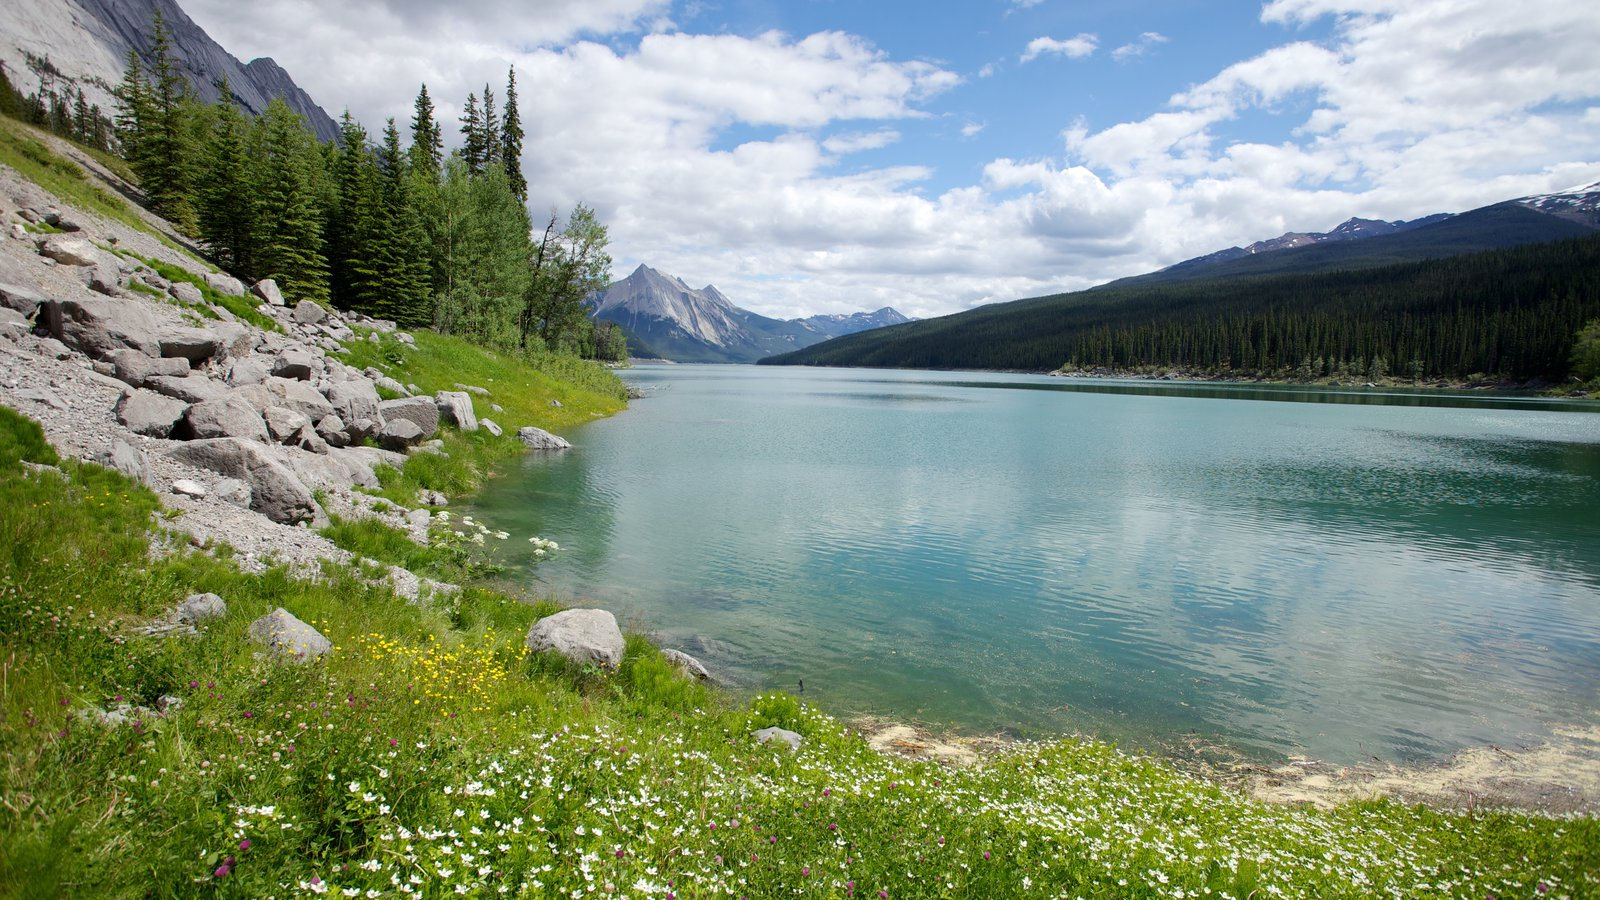 Medicine Lake featuring landscape views, mountains and a lake or waterhole